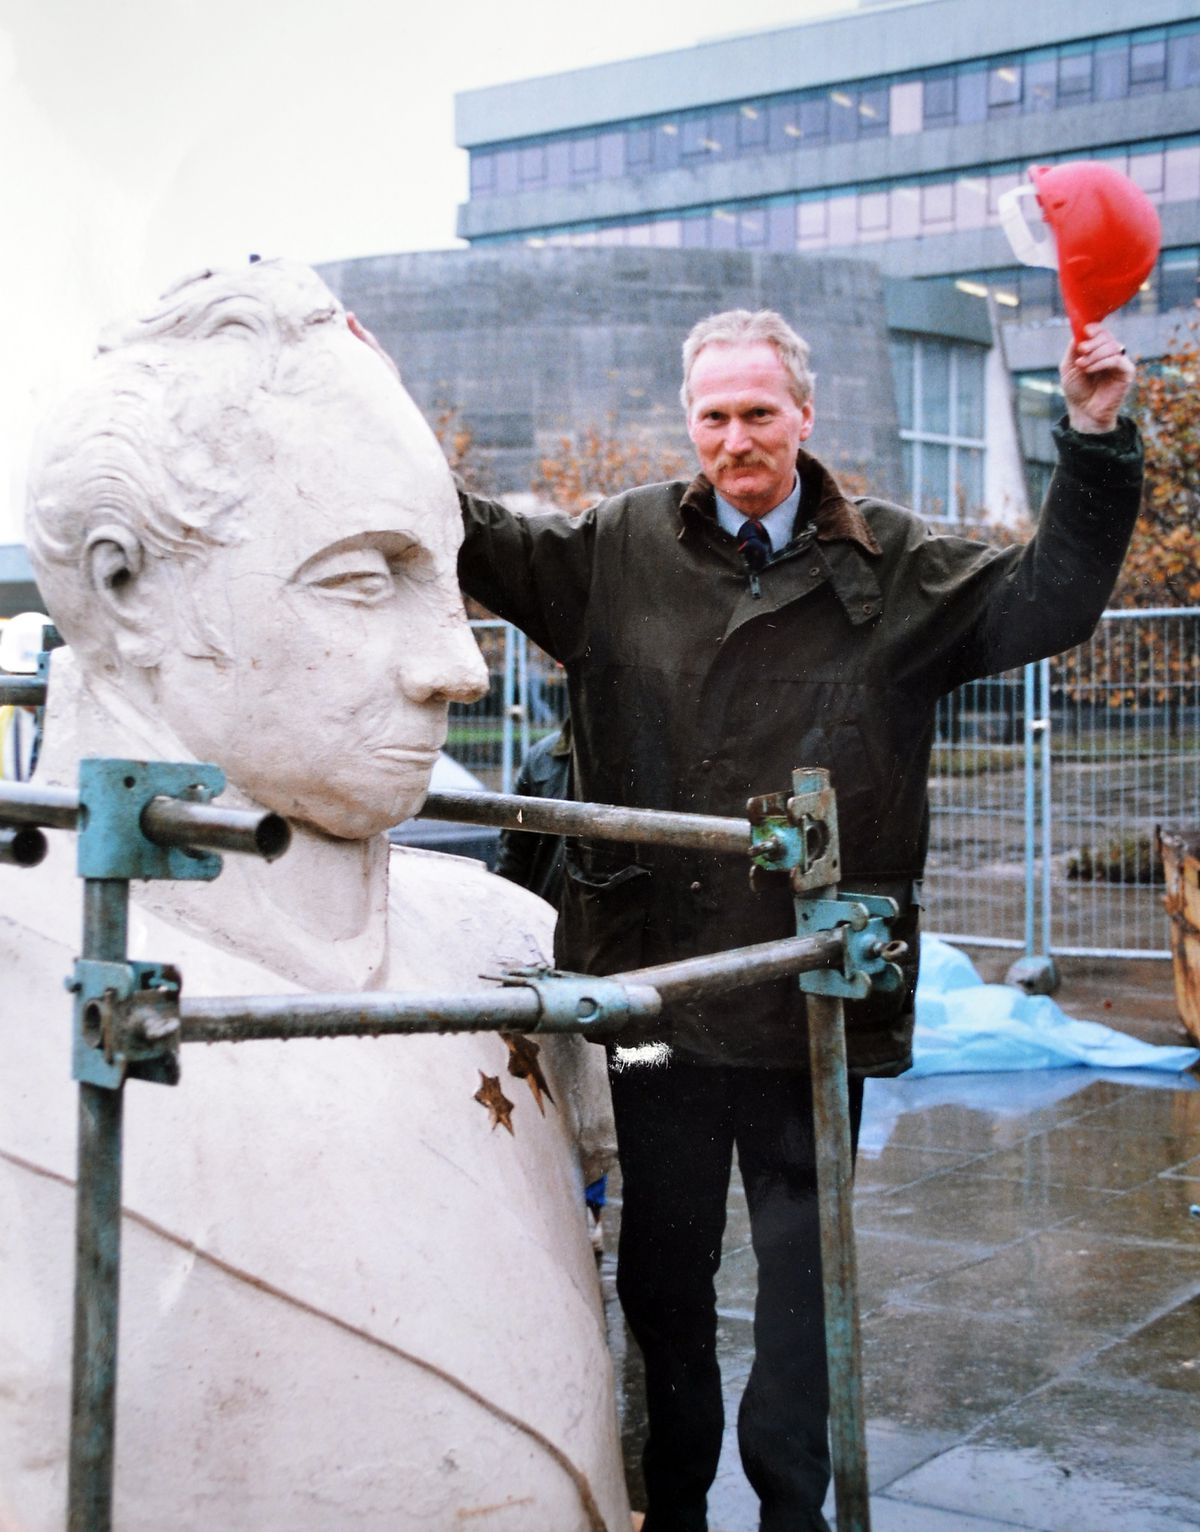 Man down... Roger Howells of Shropshire County Council with part of the statue safely on the ground.